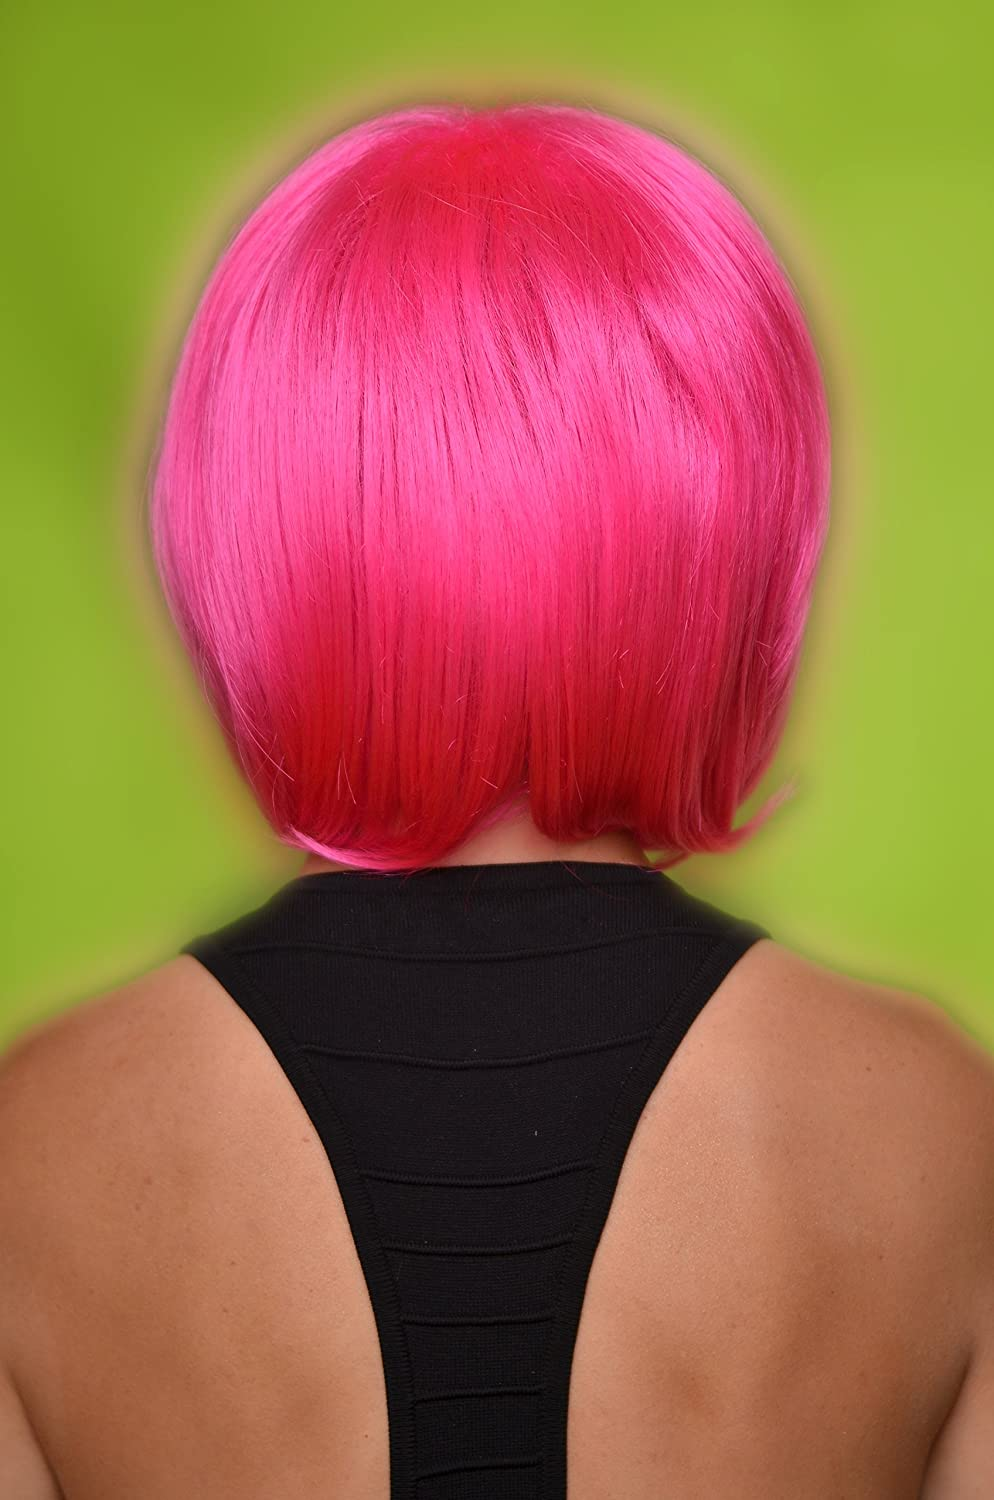 Amazon.com : Pink Wig - High Quality 100 % Kanekalon Synthetic Wigs for Women, Short Straight Style, Show Support for Breast Cancer Awareness : Hair ...